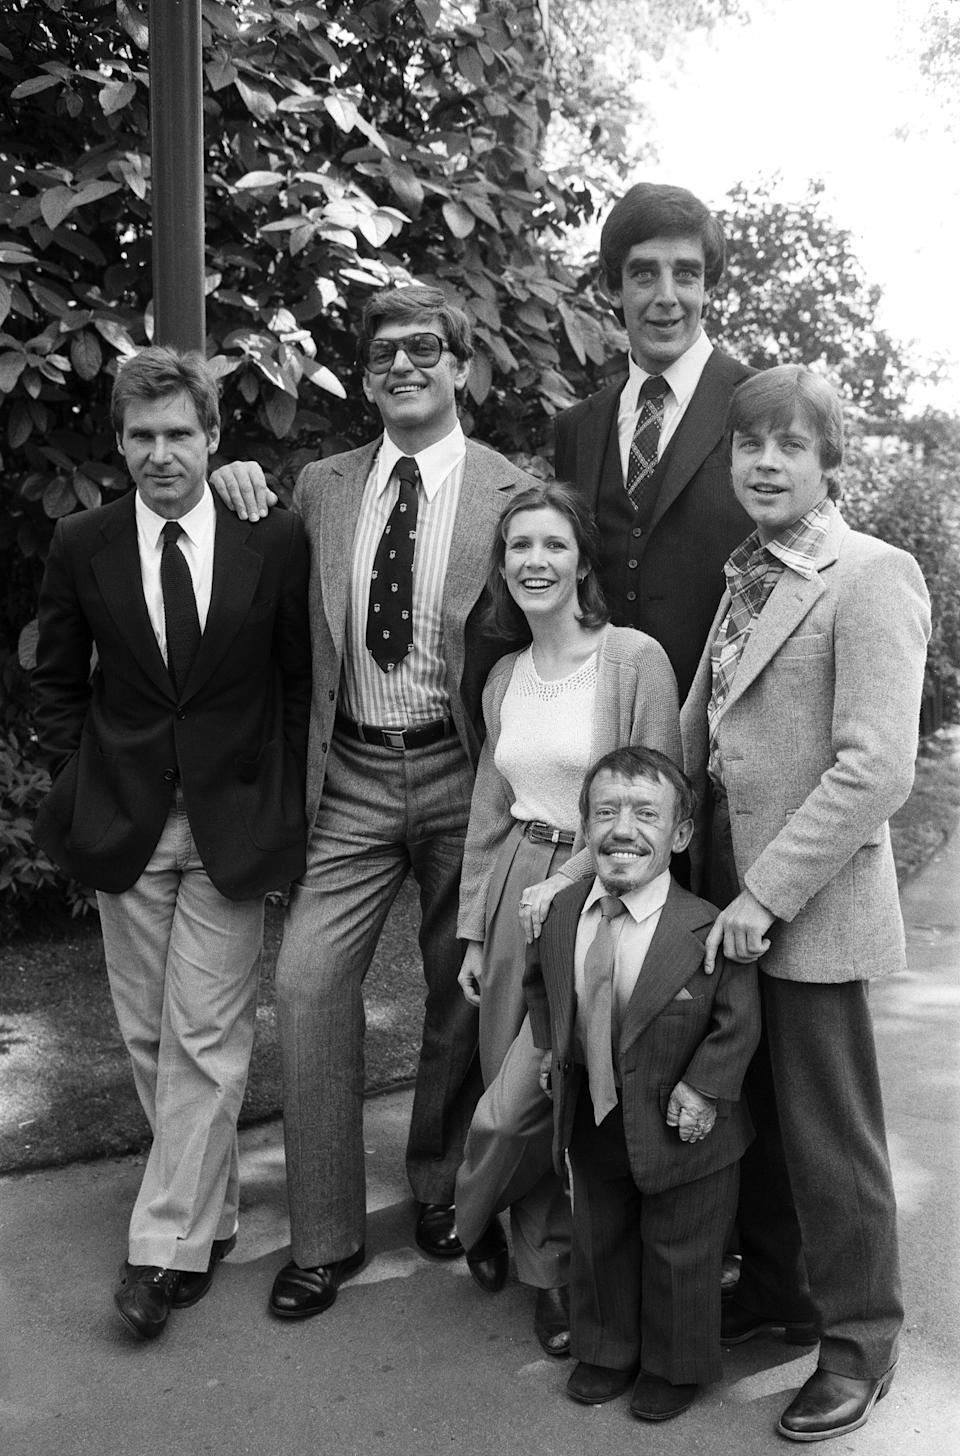 The stars of 'Star Wars: Episode V - The Empire Strikes Back' attend a photocall outside the Savoy Hotel, London, 19th May 1980. Left to right: Harrison Ford, David Prowse, Carrie Fisher, Kenny Baker, Peter Mayhew and Mark Hamill, 19th May 1980. (Photo by Alisdair MacDonald/Daily Mirror/Mirrorpix/Getty Images)Mirror/Mirrorpix/Getty Images)